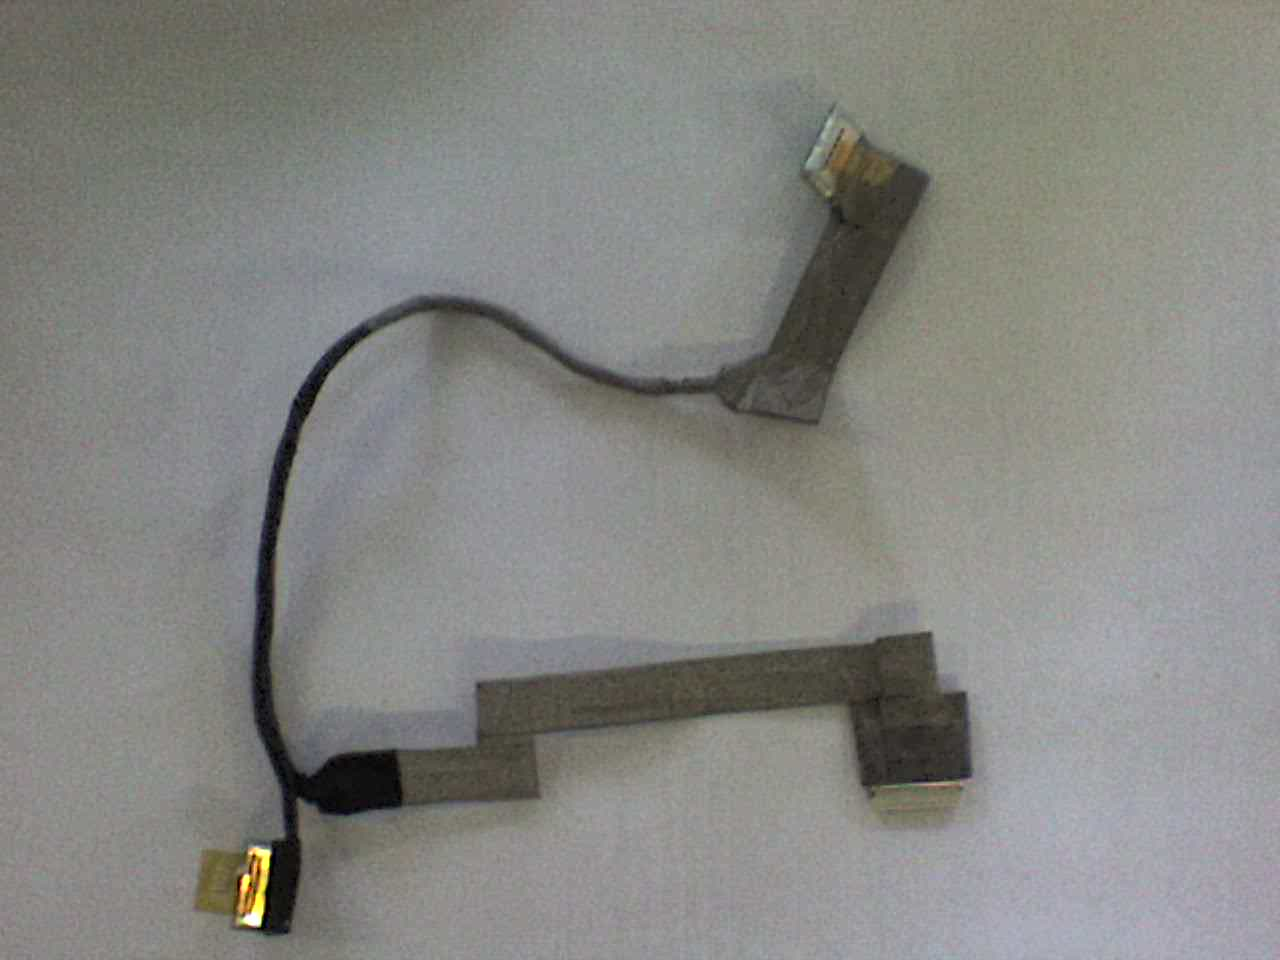 91P6928 USED DIGITIZER CABLE FOR THINKPAD X41